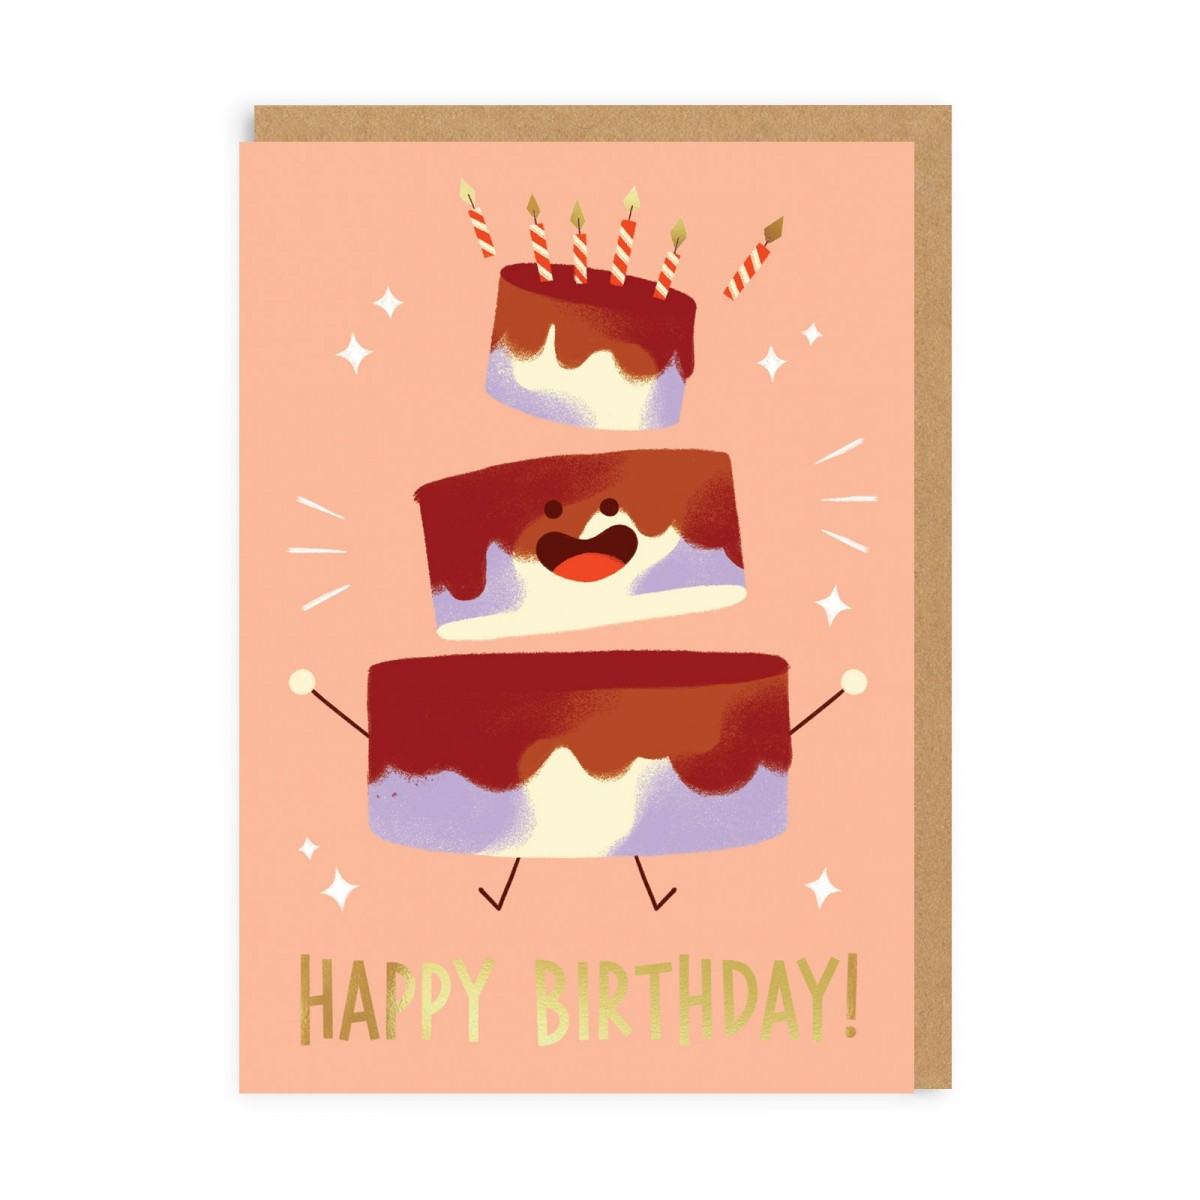 msy-gc-016-a6_happy_birthday_cake.jpg